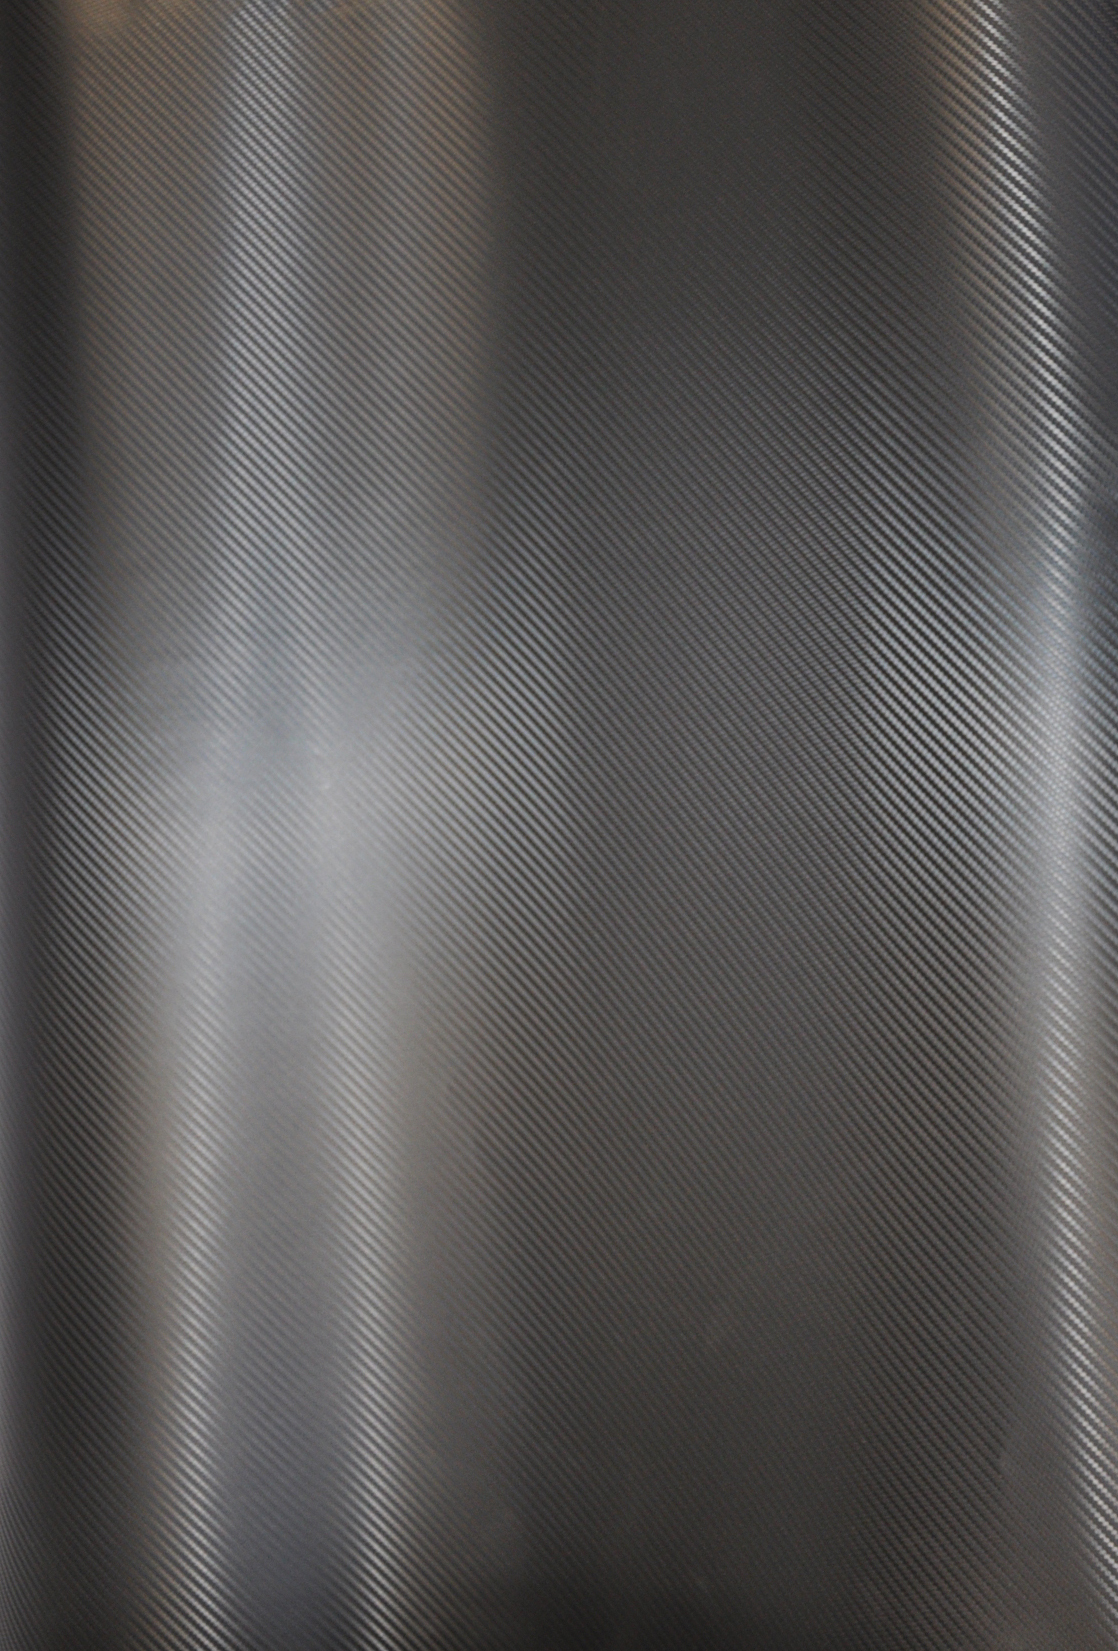 60X2yds Black Carbon Fiber Vehicle Wrapping Vinyl Sticky Backing